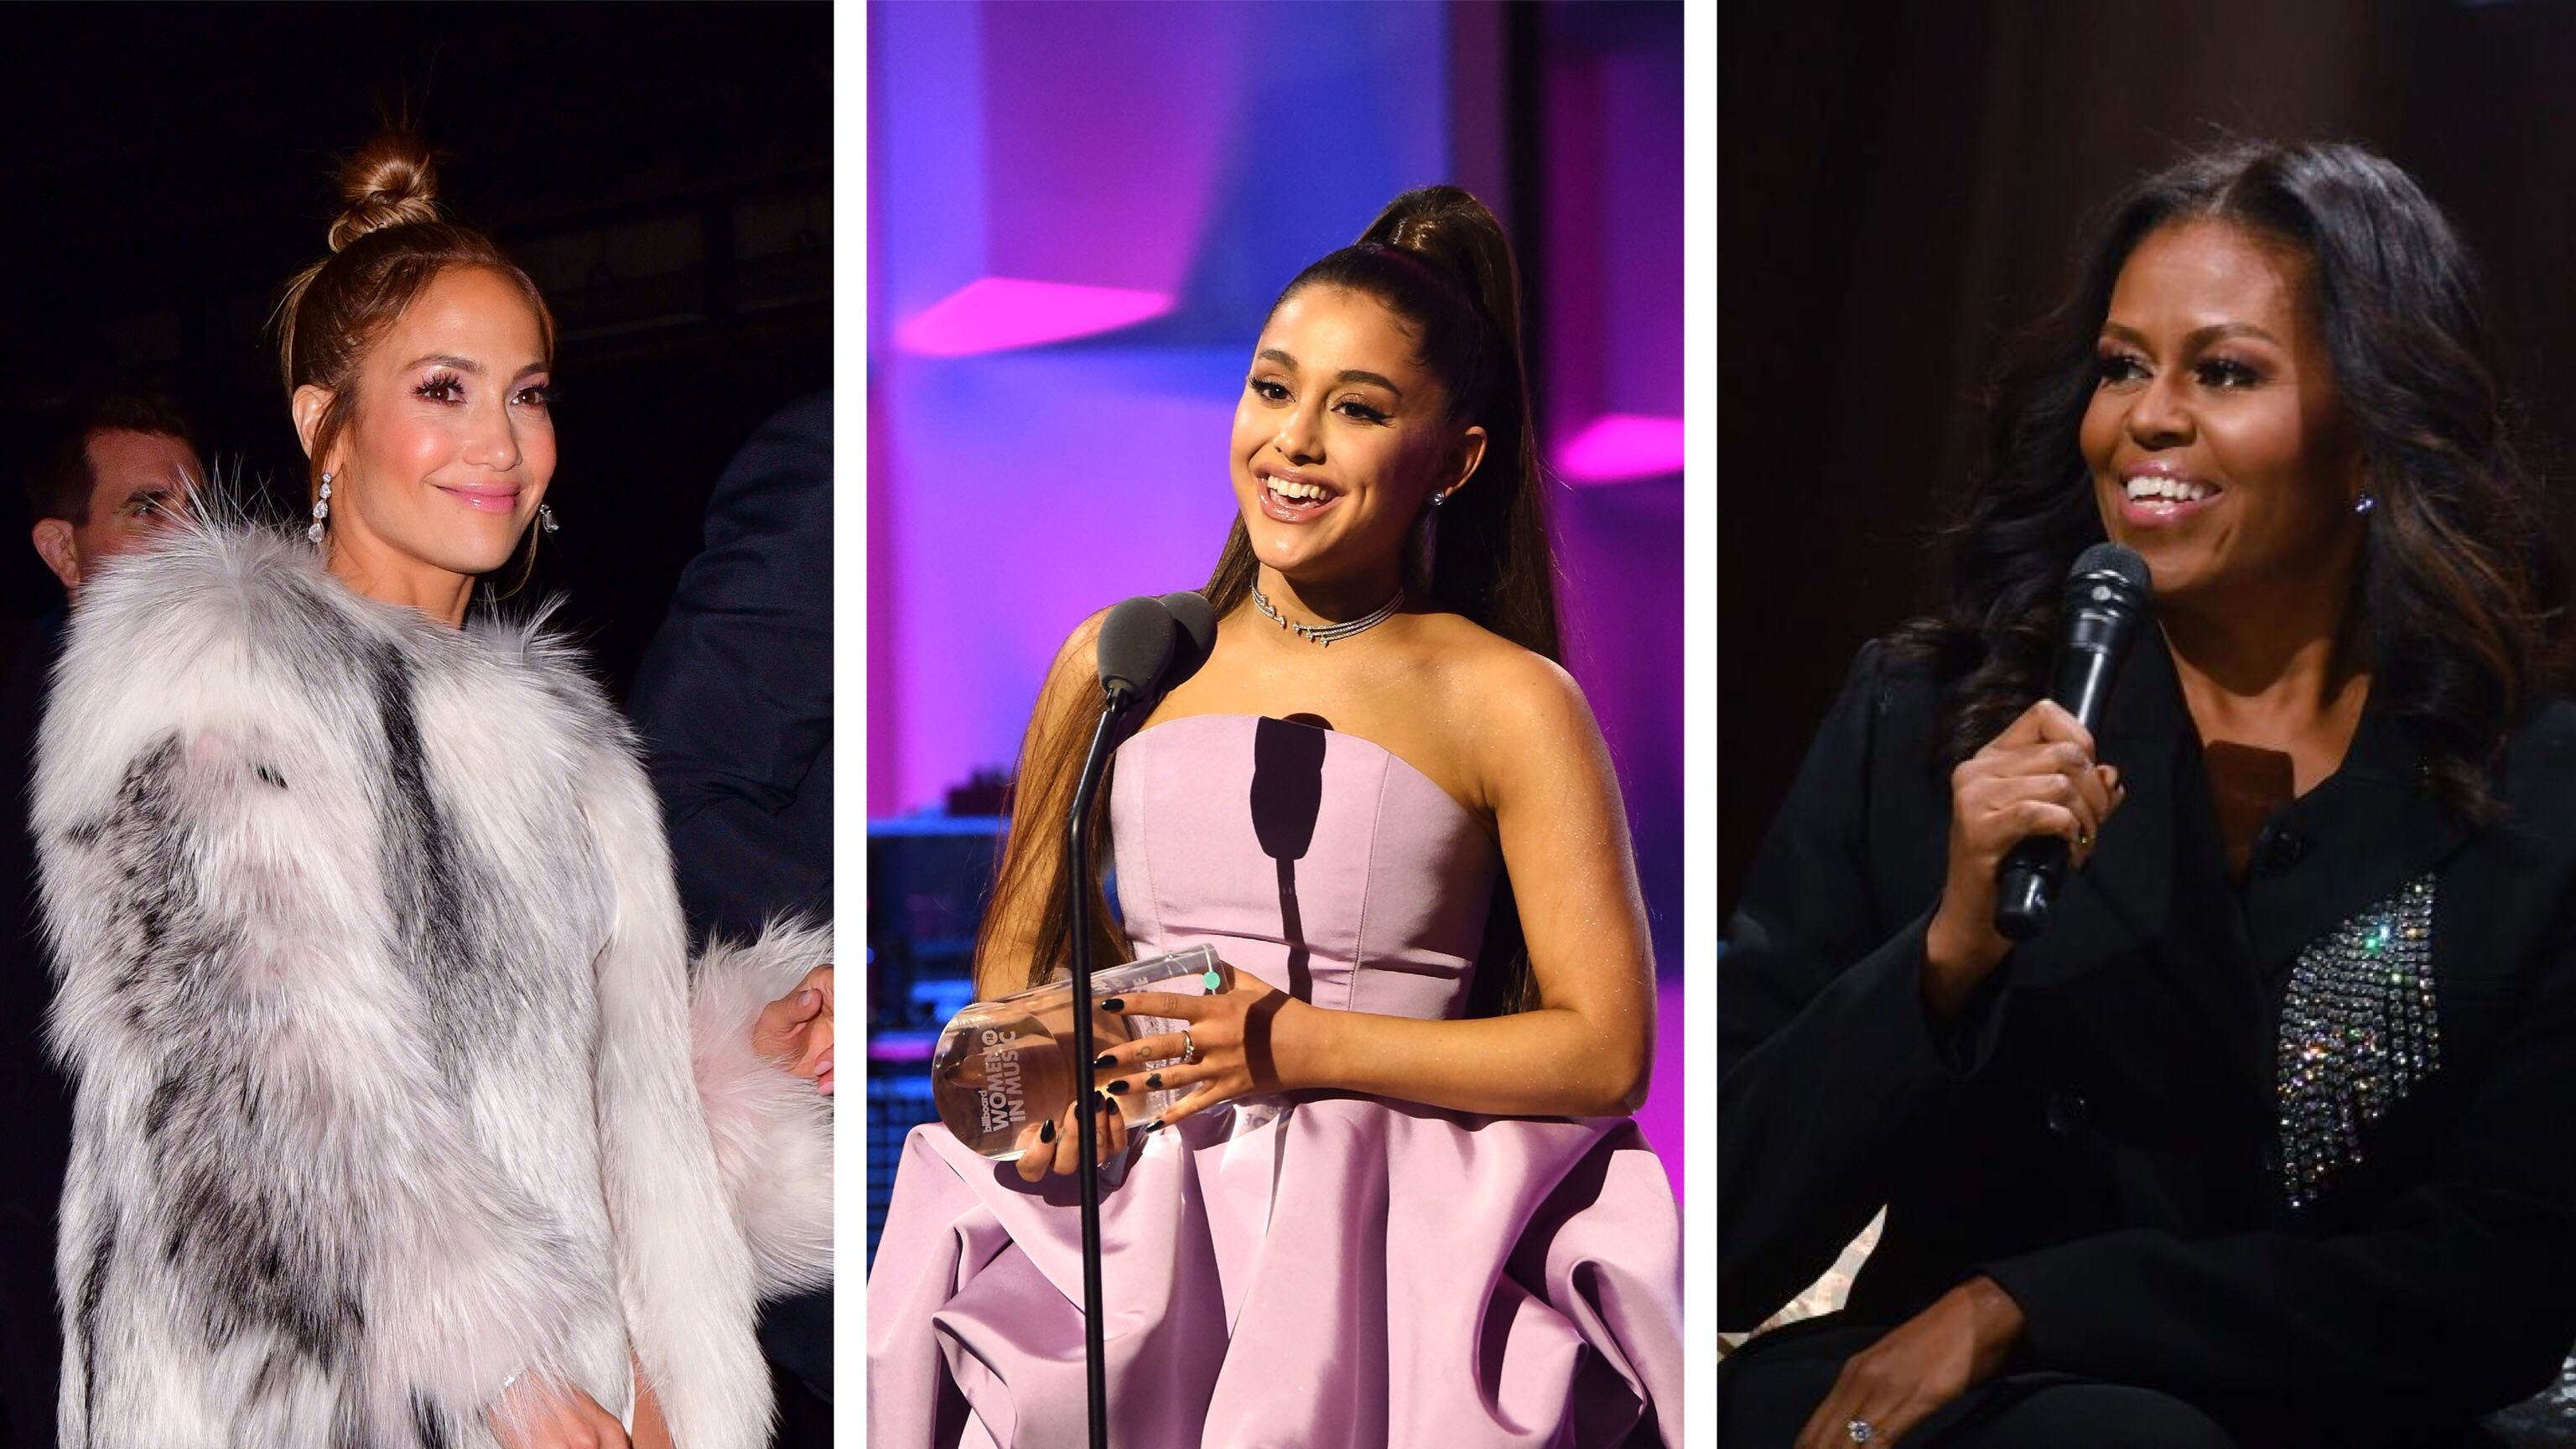 Jennifer Lopez (Photo by James Devaney/GC Images via Getty Images) // Ariana Grande (Photo by Kevin Mazur/Getty Images for Billboard) // Michelle Obama (Photo by Marvin Joseph/The Washington Post via Getty Images)